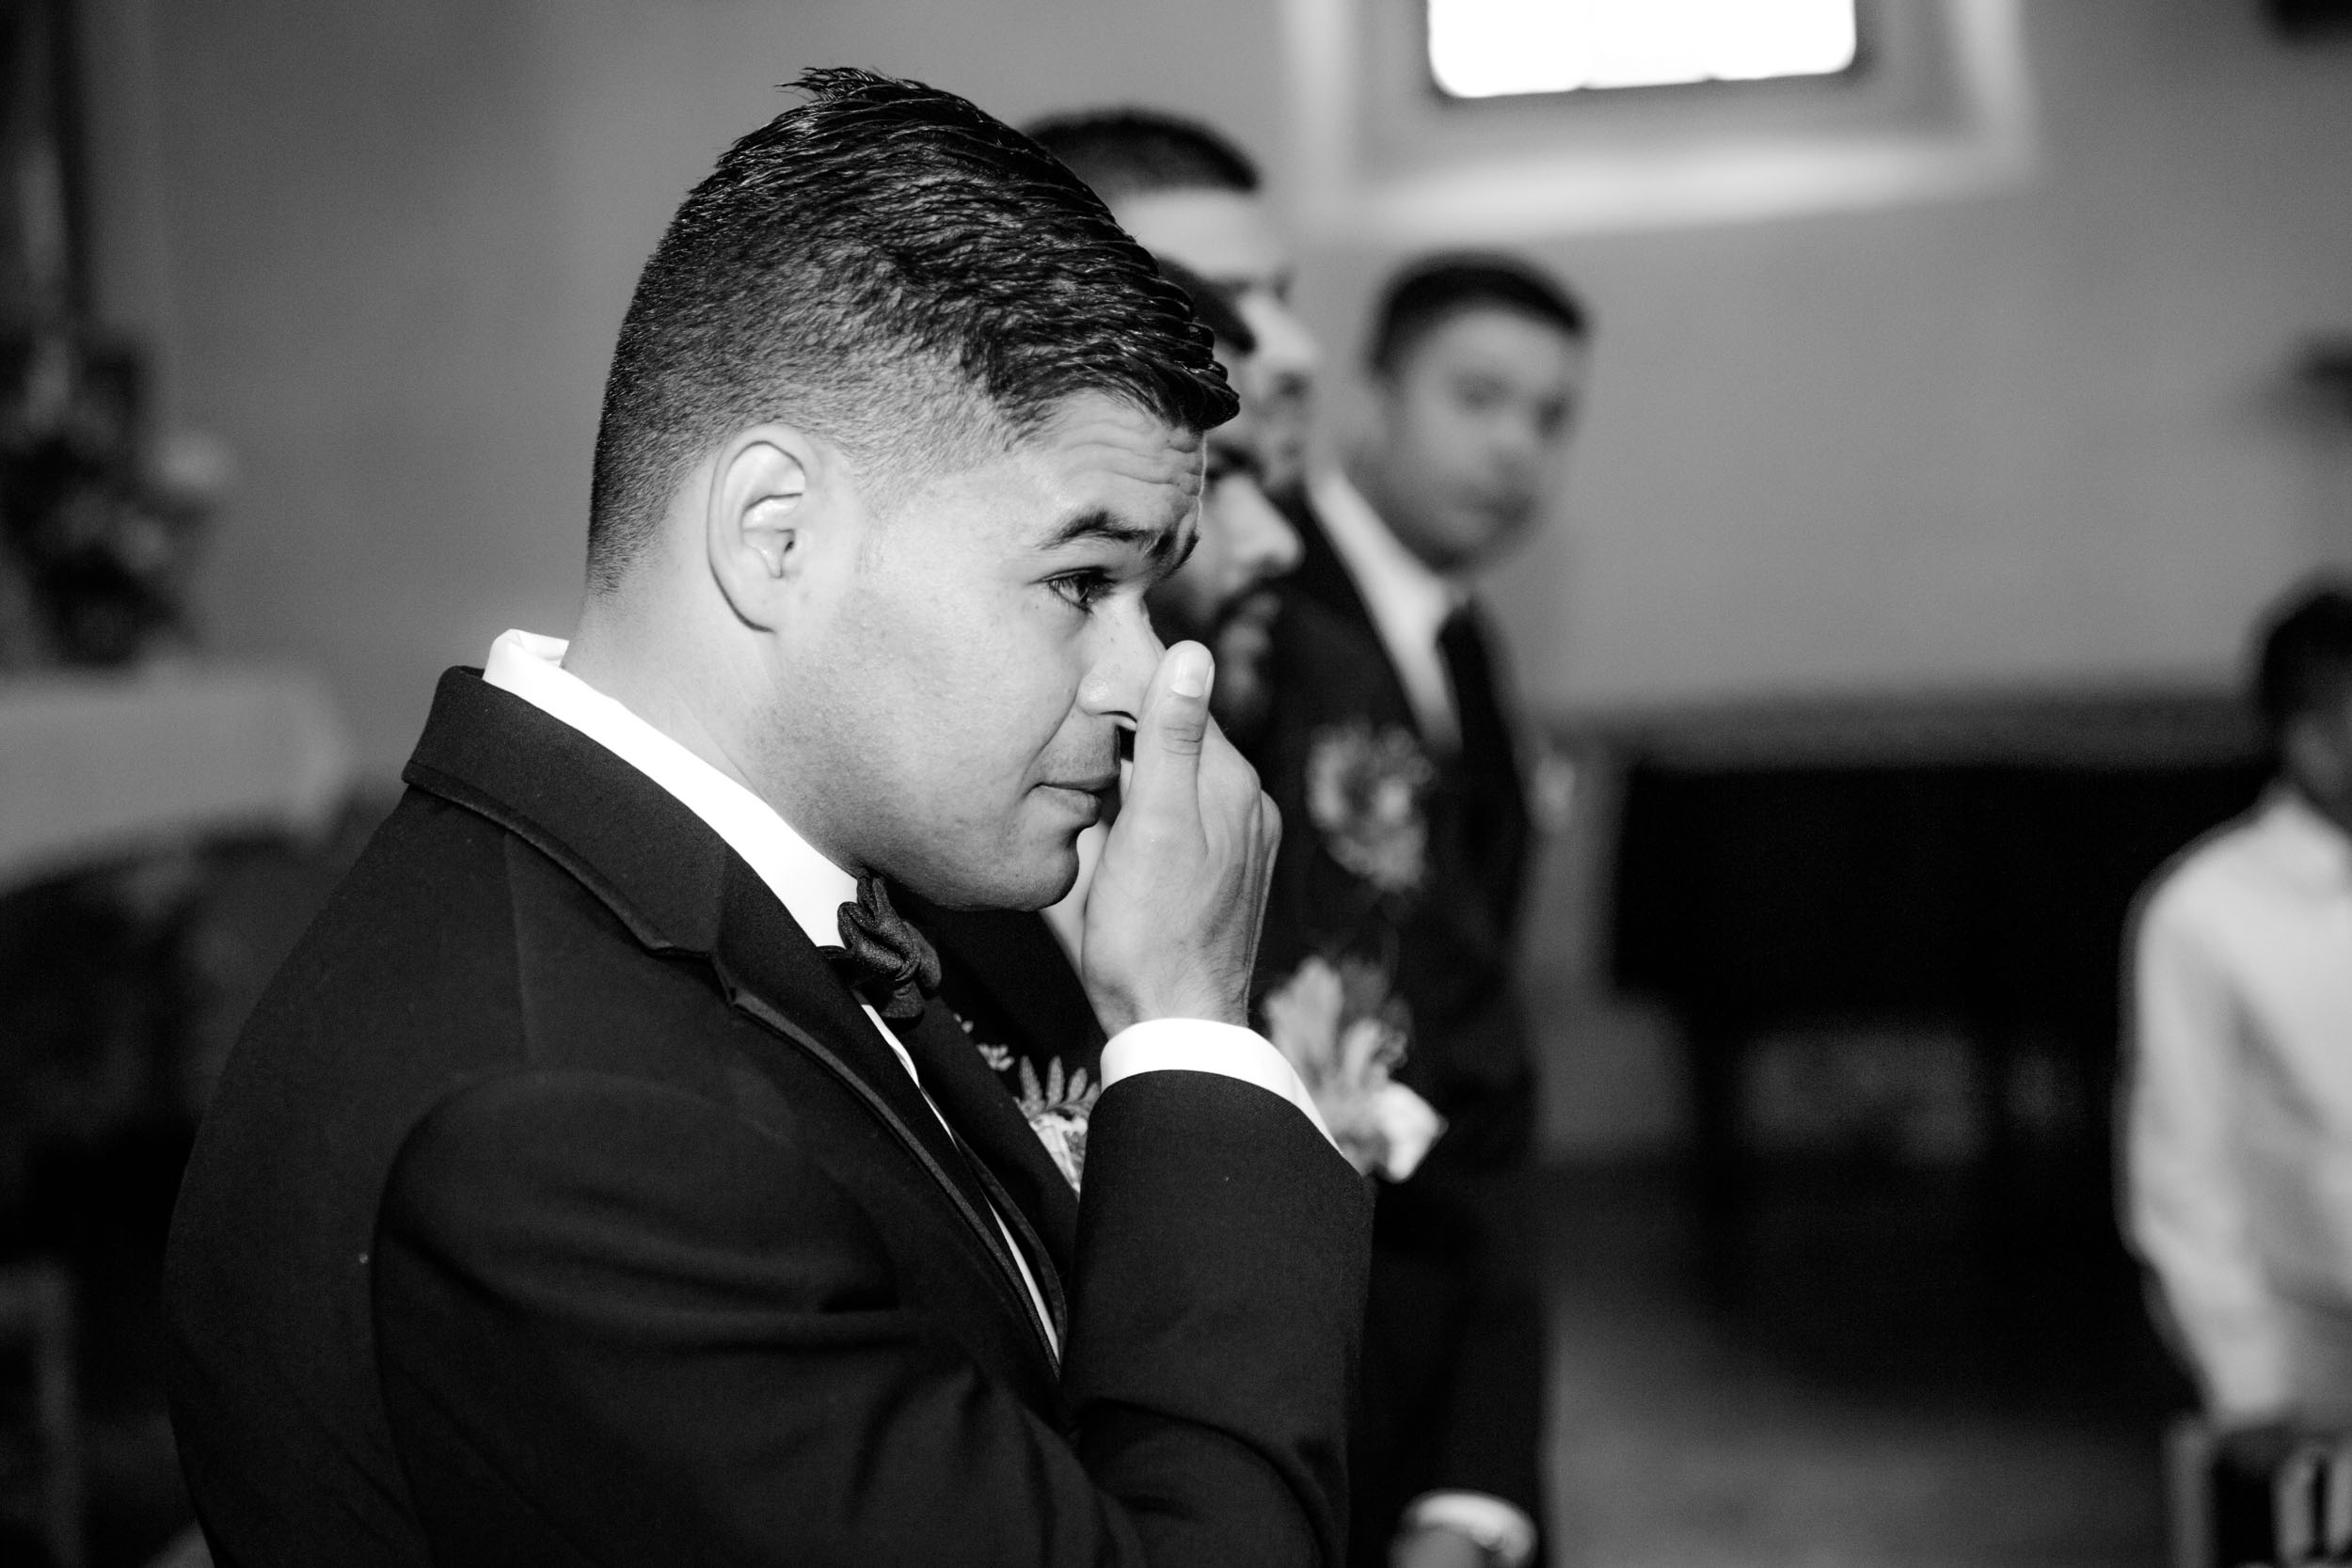 Our Wedding-246